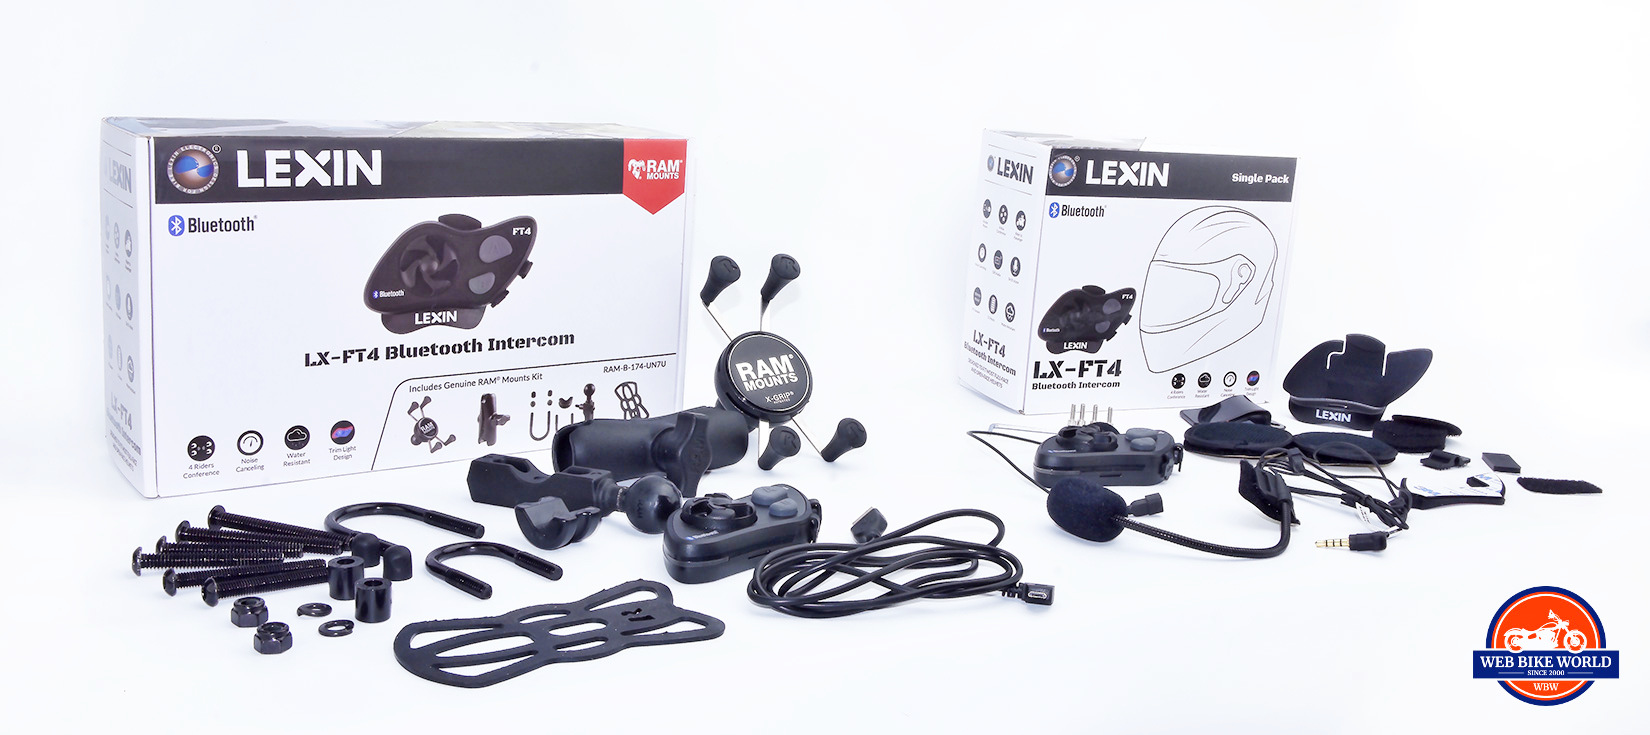 Lexin FT4 Communicator devices and a RAM Mounts X Grip.